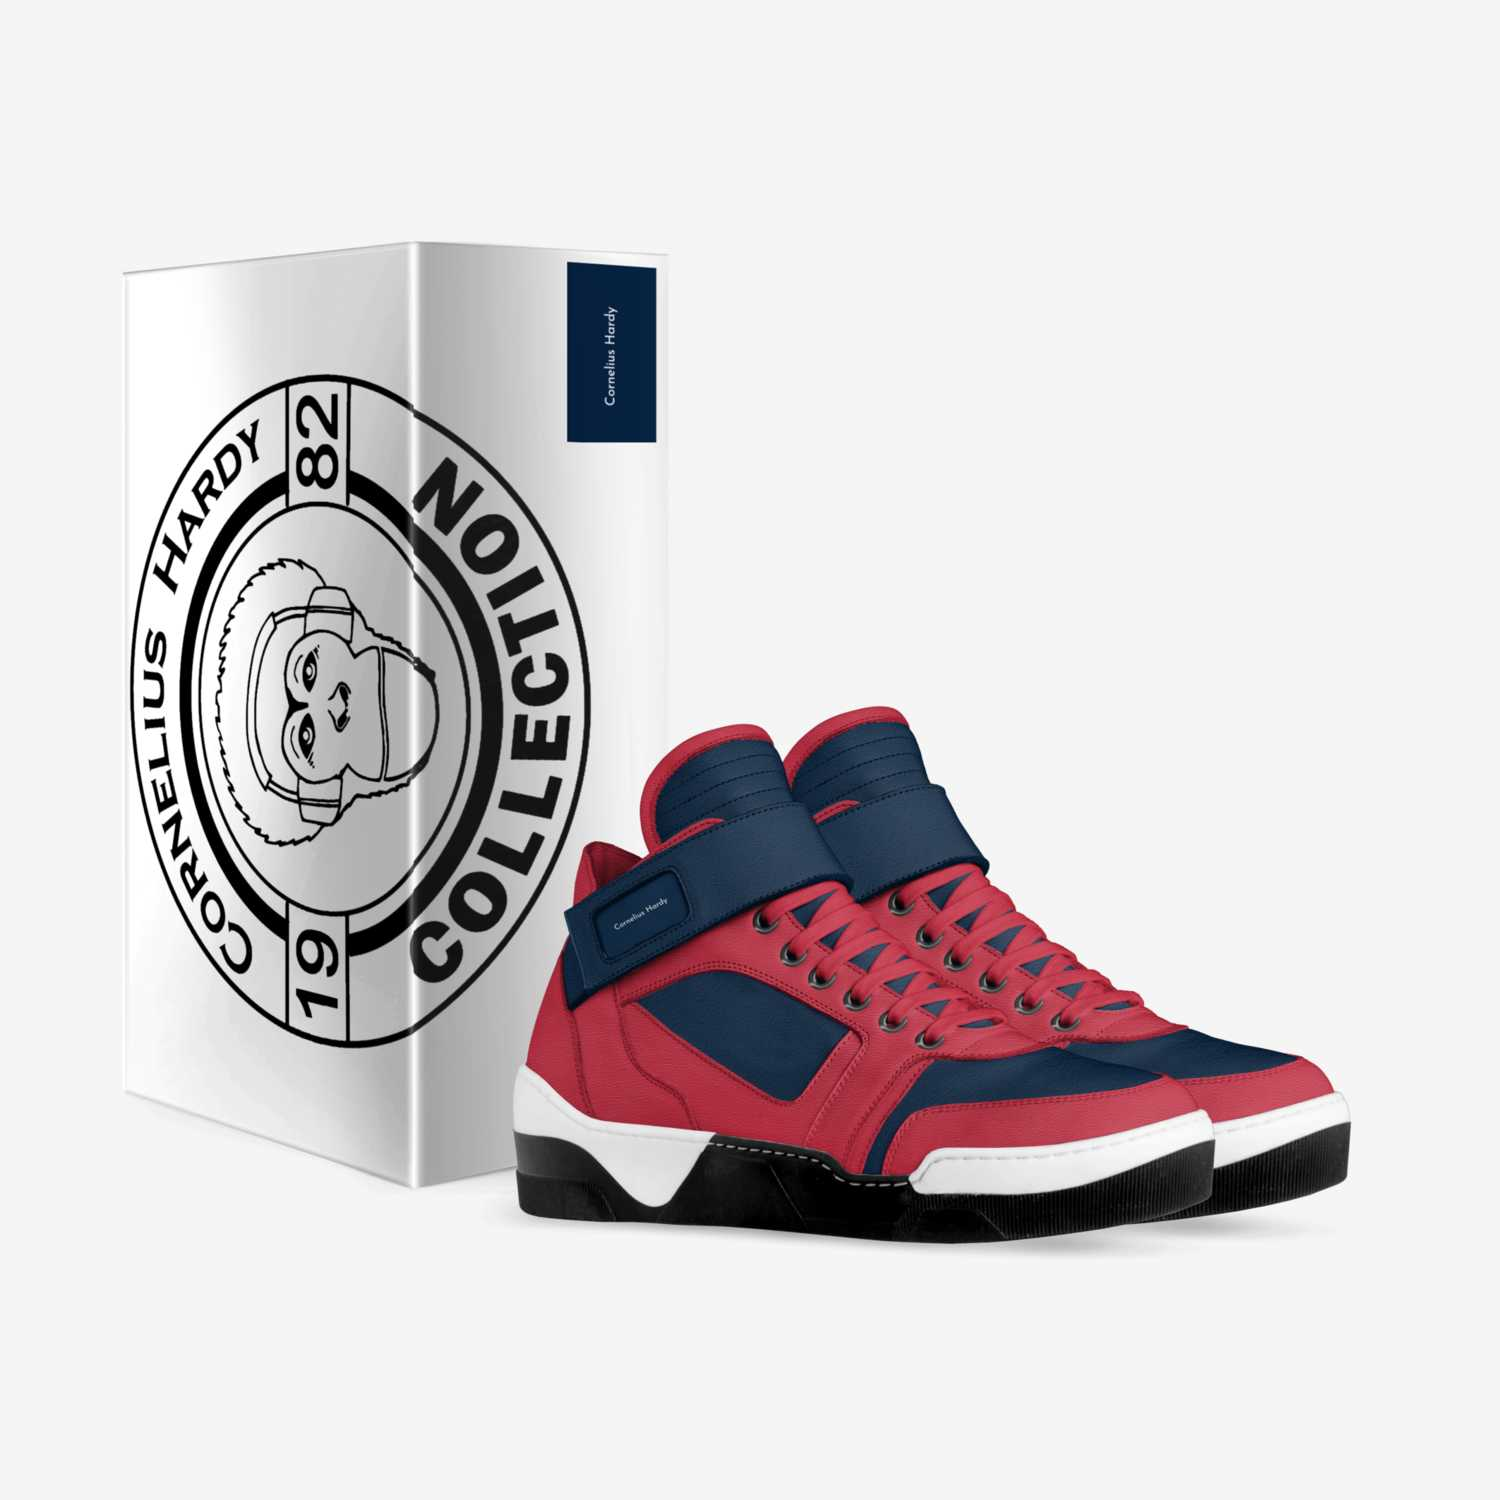 CH1 custom made in Italy shoes by Cornelius Hardy | Box view